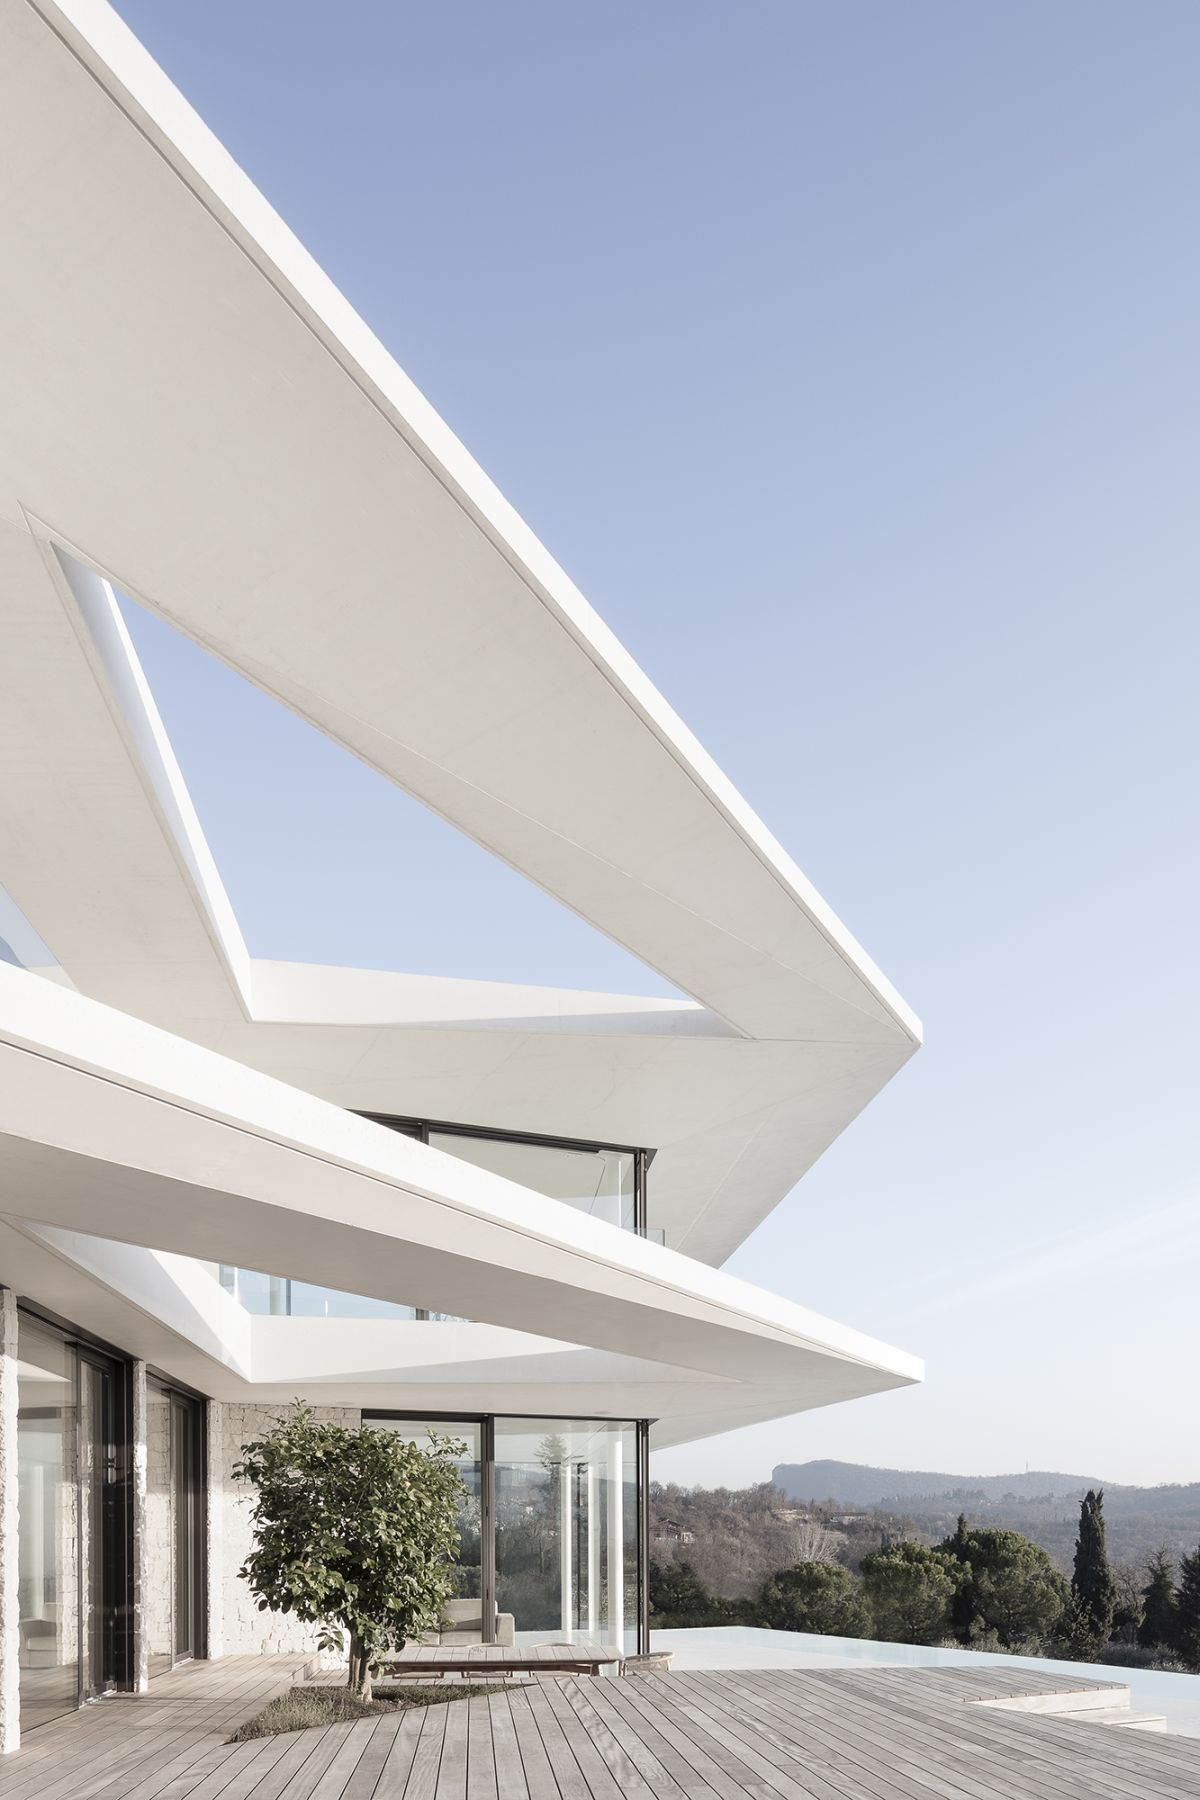 The shape of the roof including the skylight is mimicked on the floor below